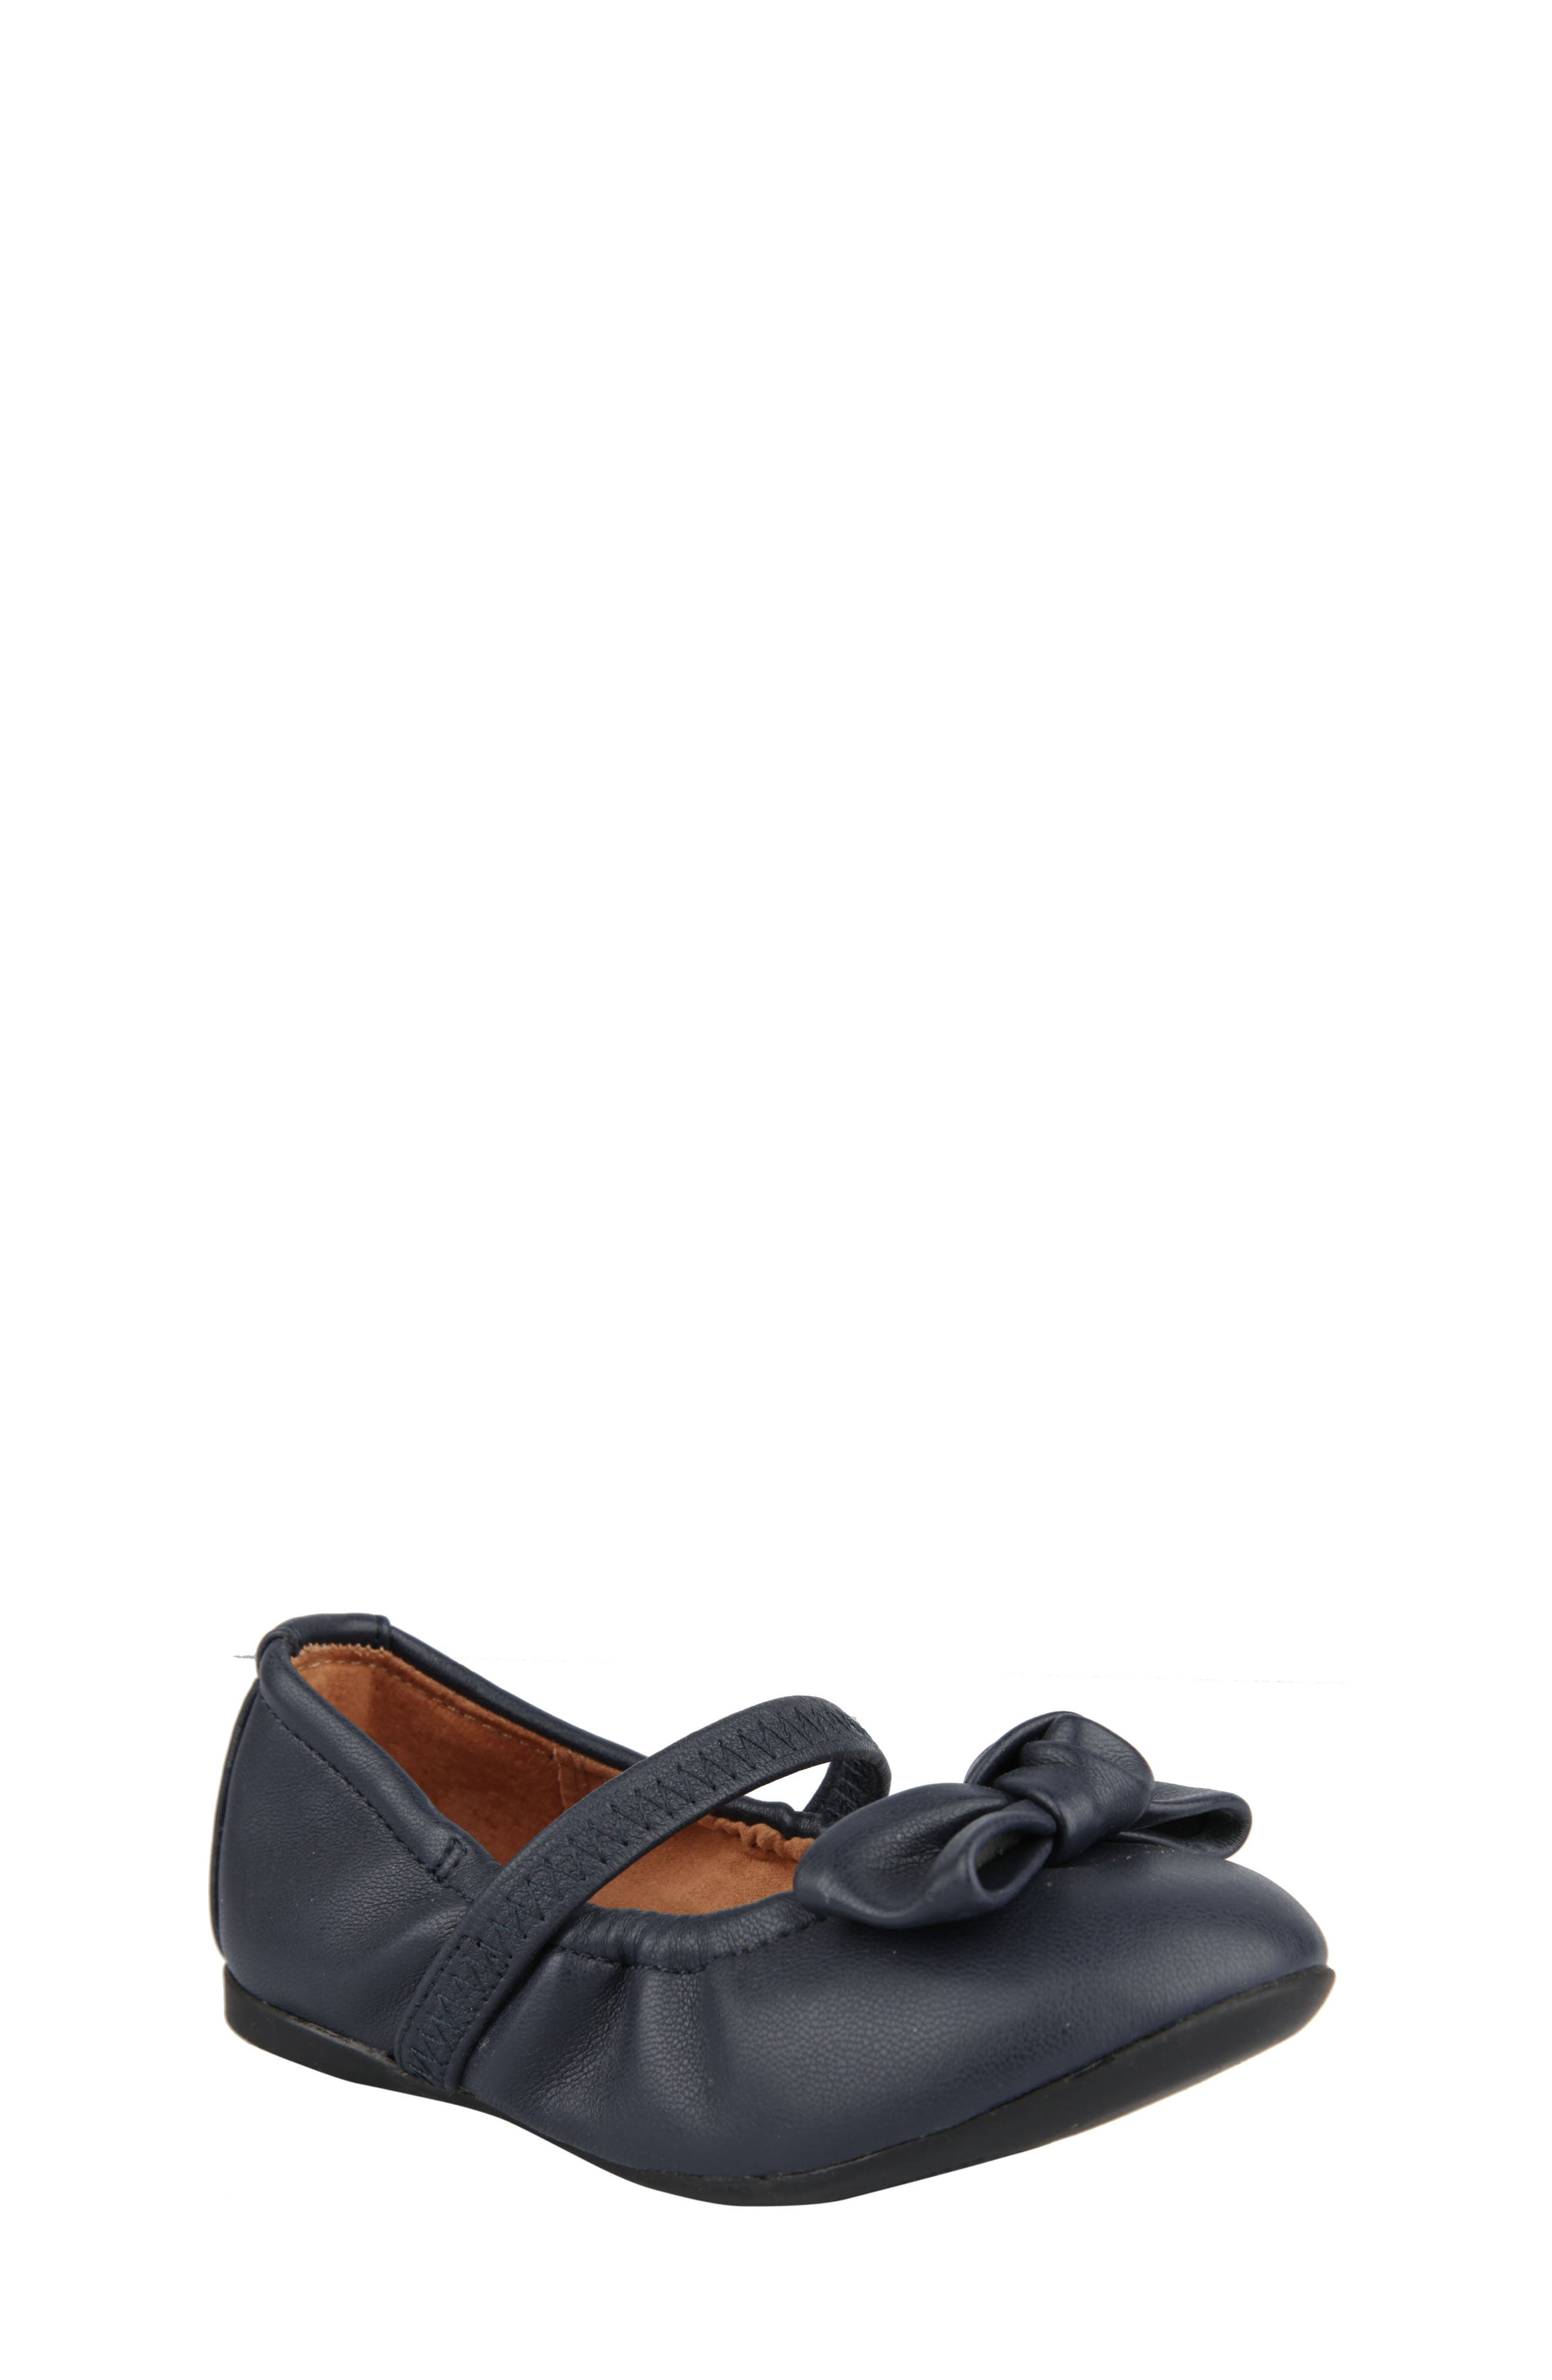 Main Image - Nina Karla Mary Jane Ballet Flat (Walker & Toddler)